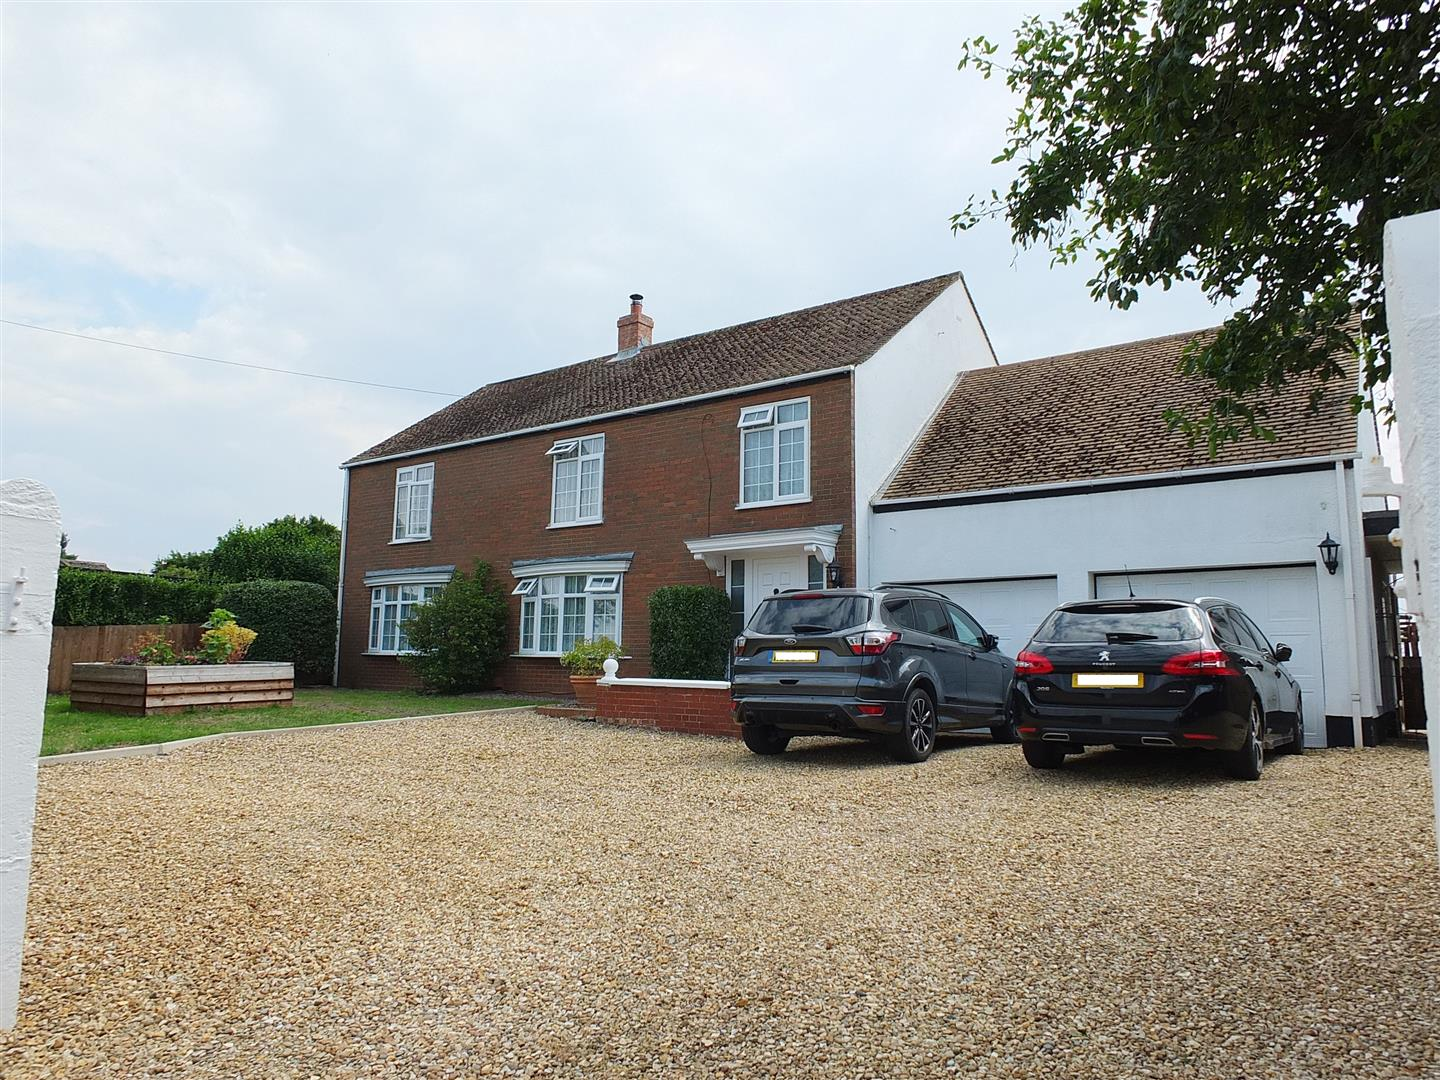 5 bed detached house for sale in Gedney Dyke Spalding, PE12 0AR - Property Image 1